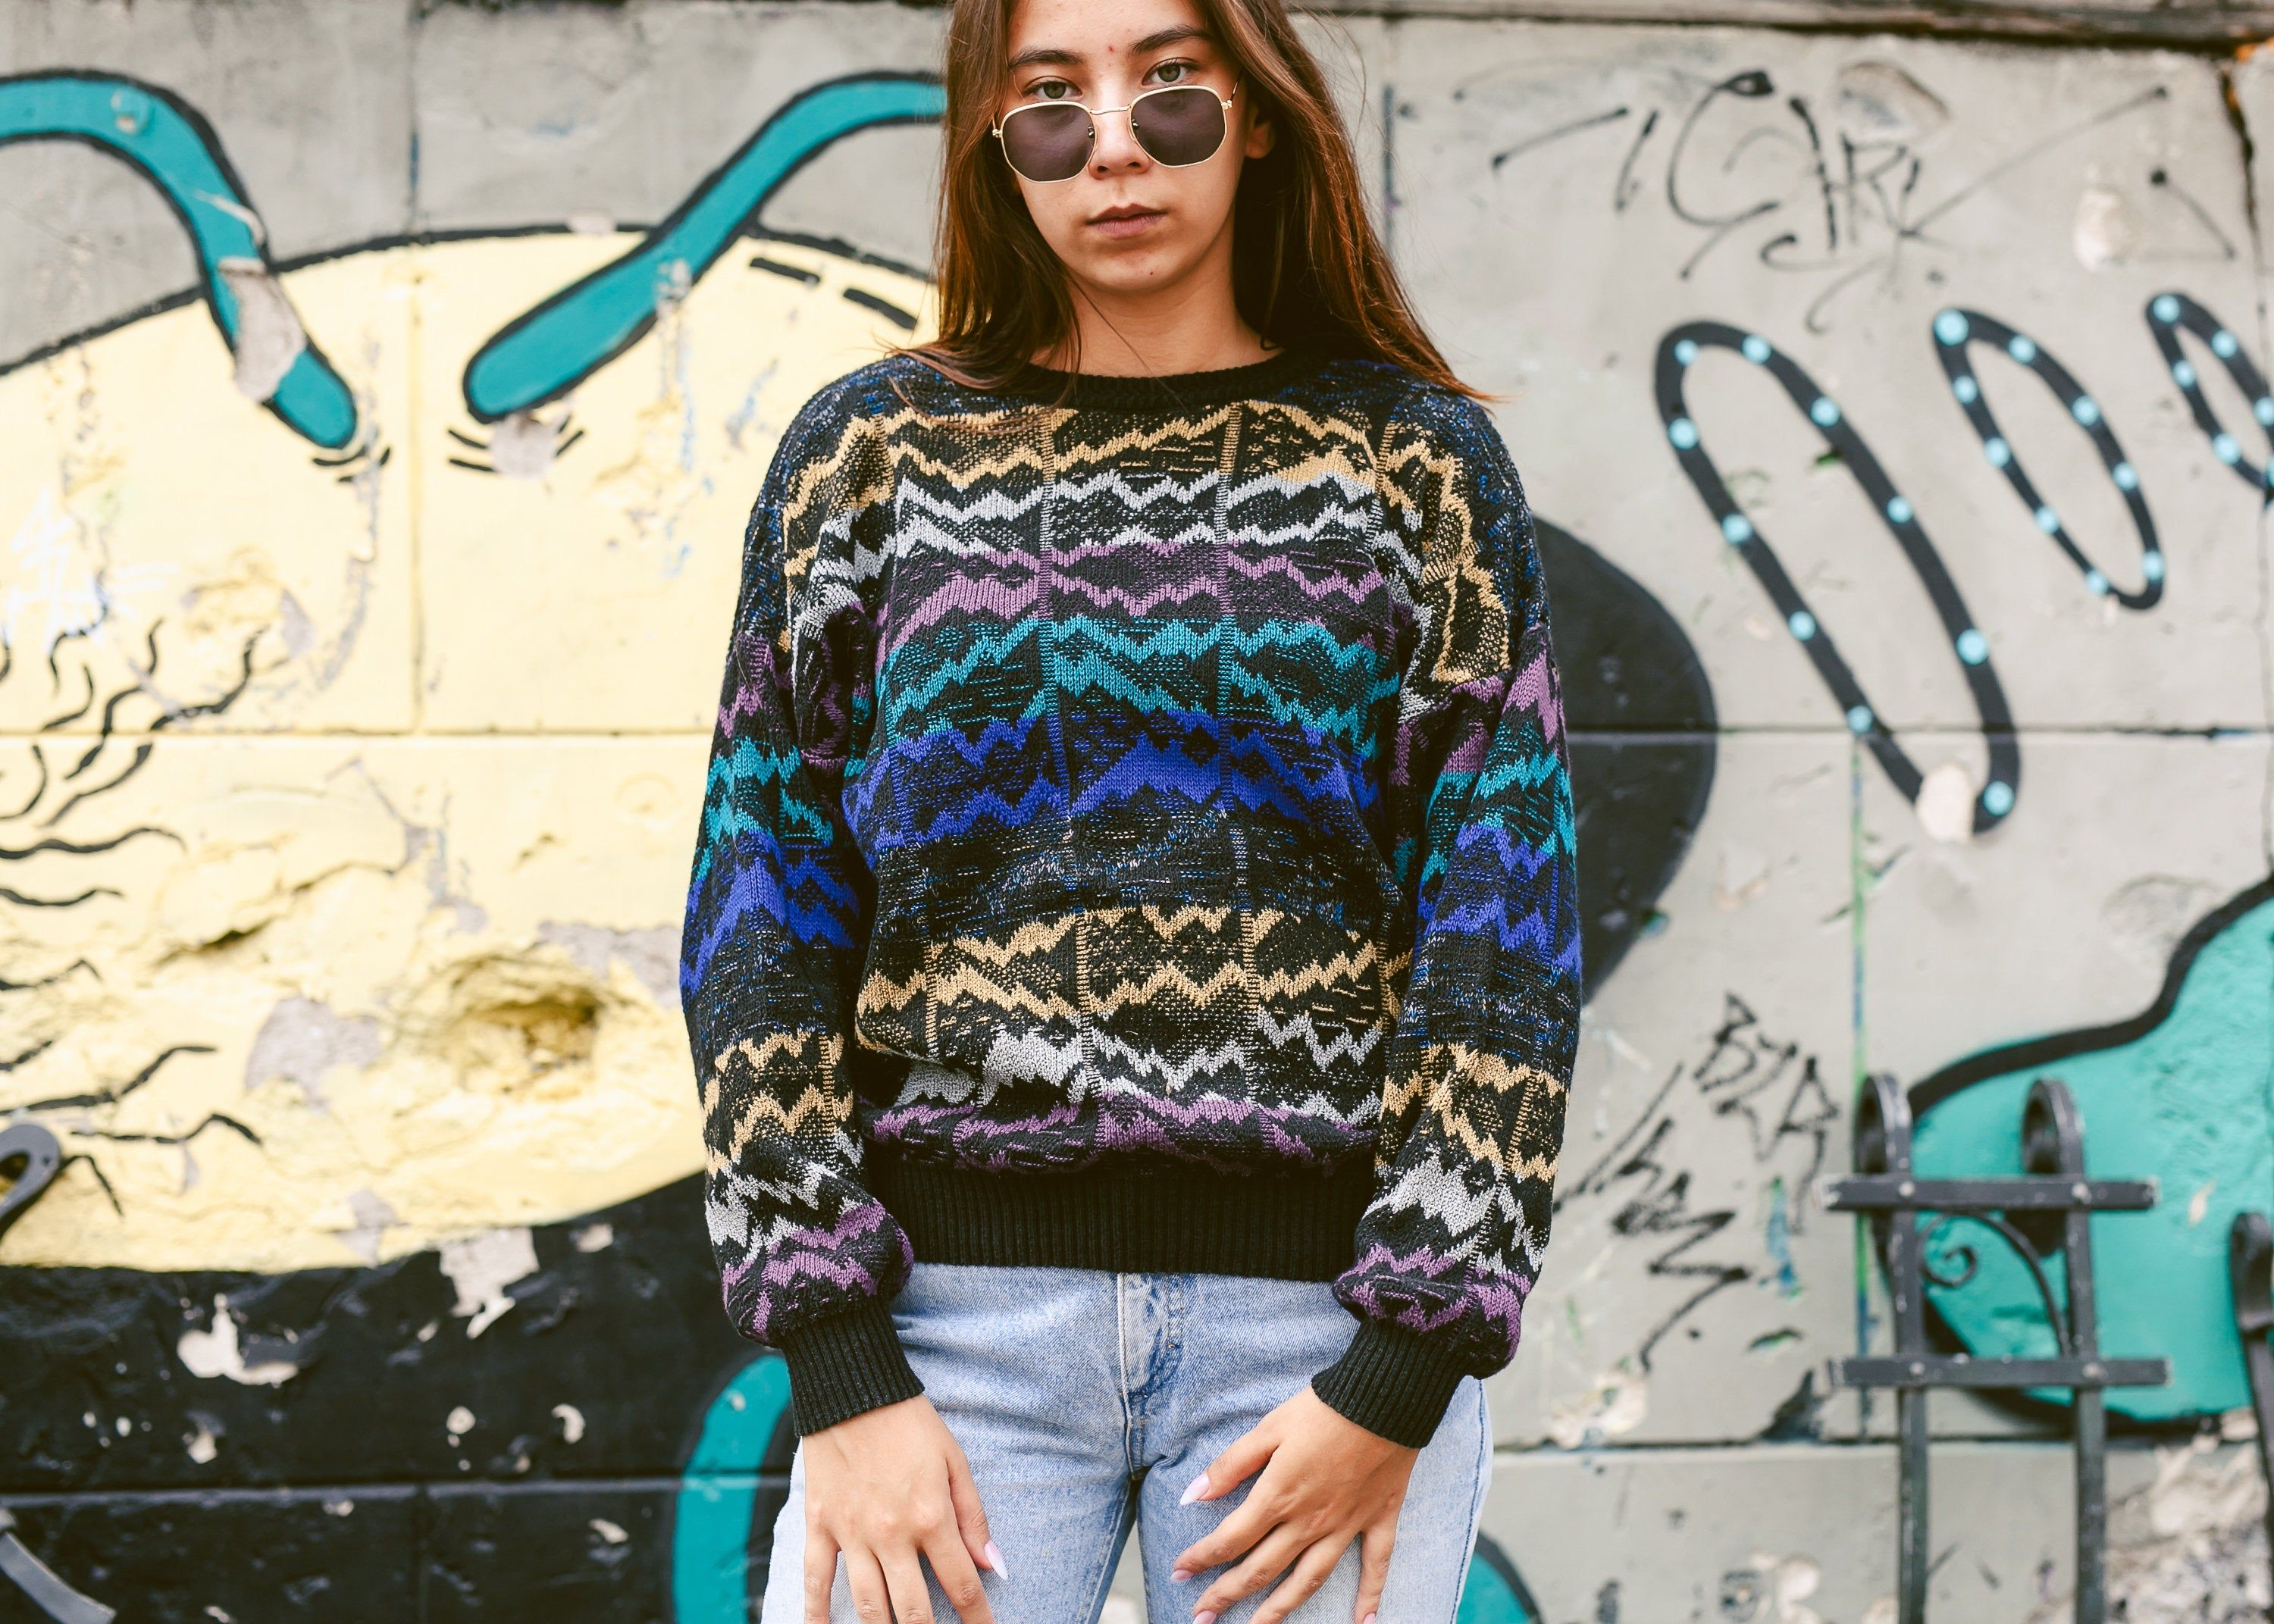 Oversized 1980s Sweater  80s clothing  80s Sweater  90s Sweater  90s Clothing  Large Sweater  Grunge Sweater  Blue Sweater